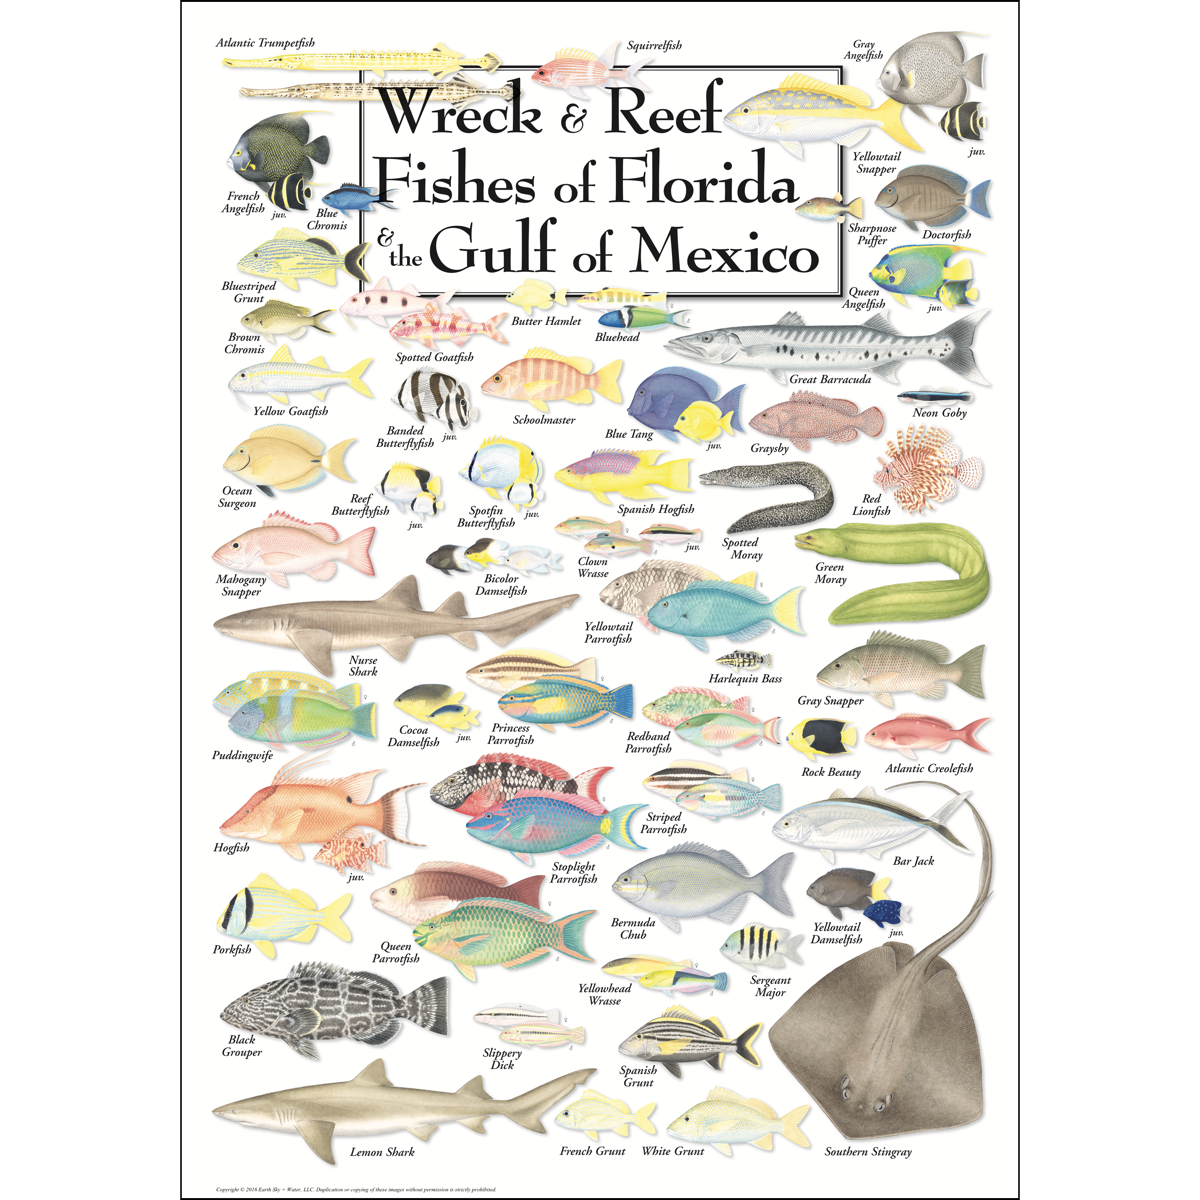 Wreck reef fishes of florida the gulf of mexico for Fish of florida